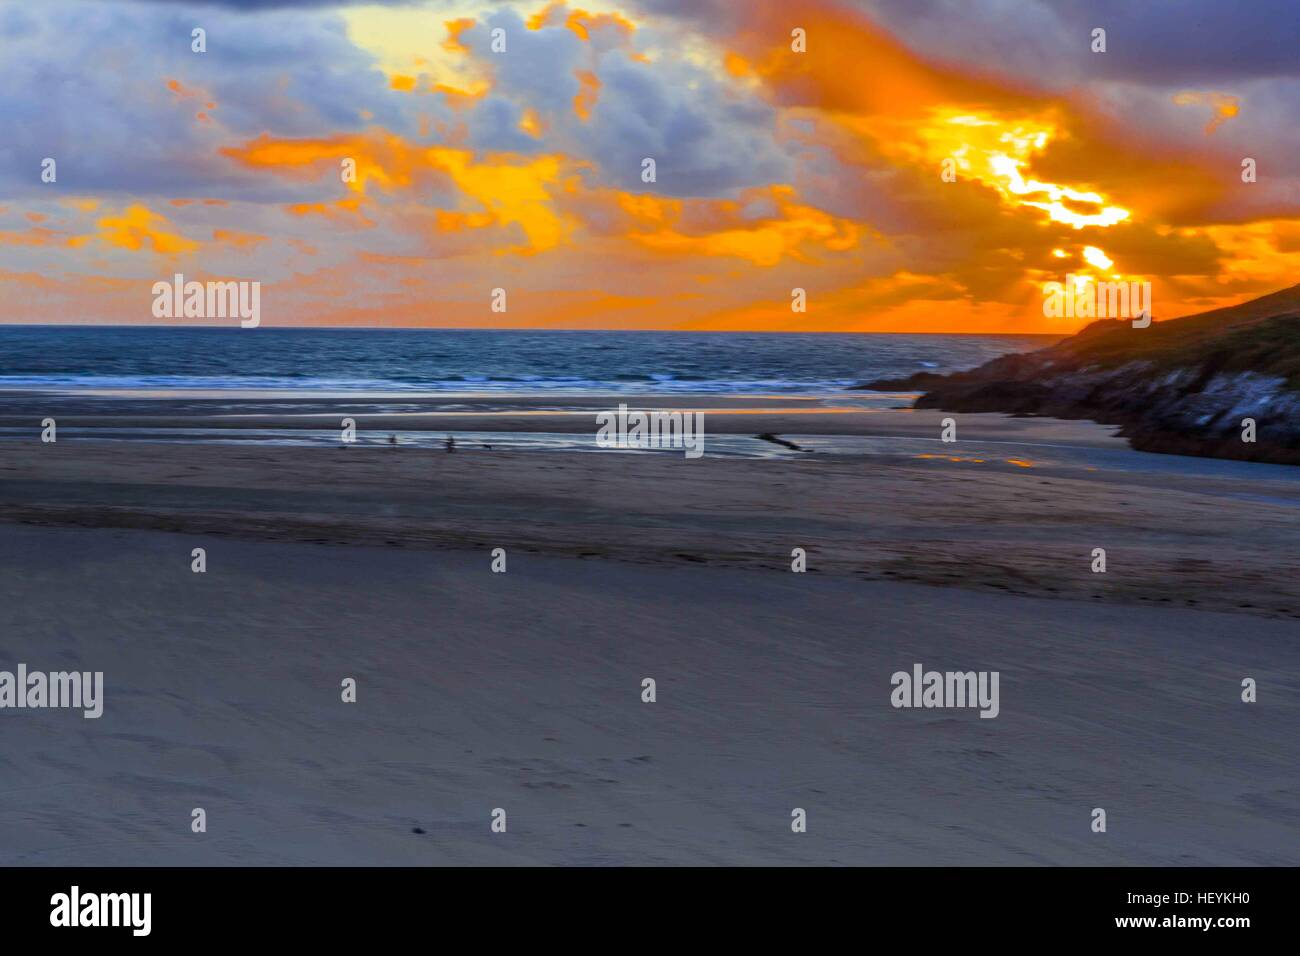 a river estuary and beach on Crantock Beach in Newquay, Cornwall, UK Stock Photo